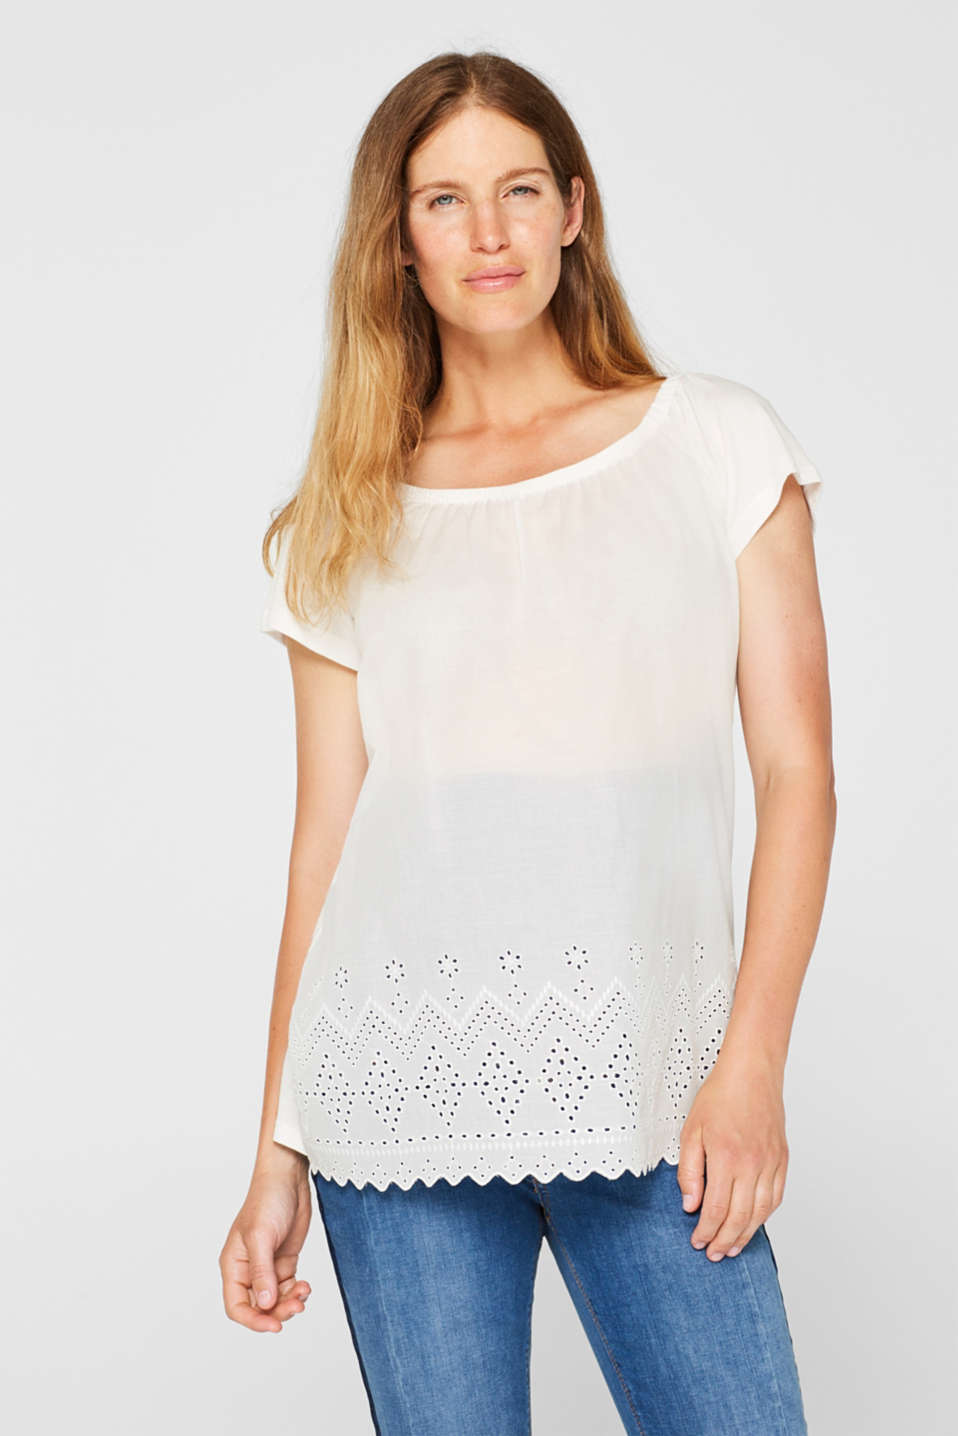 Esprit - Off-the-shoulder tee with broderie anglaise